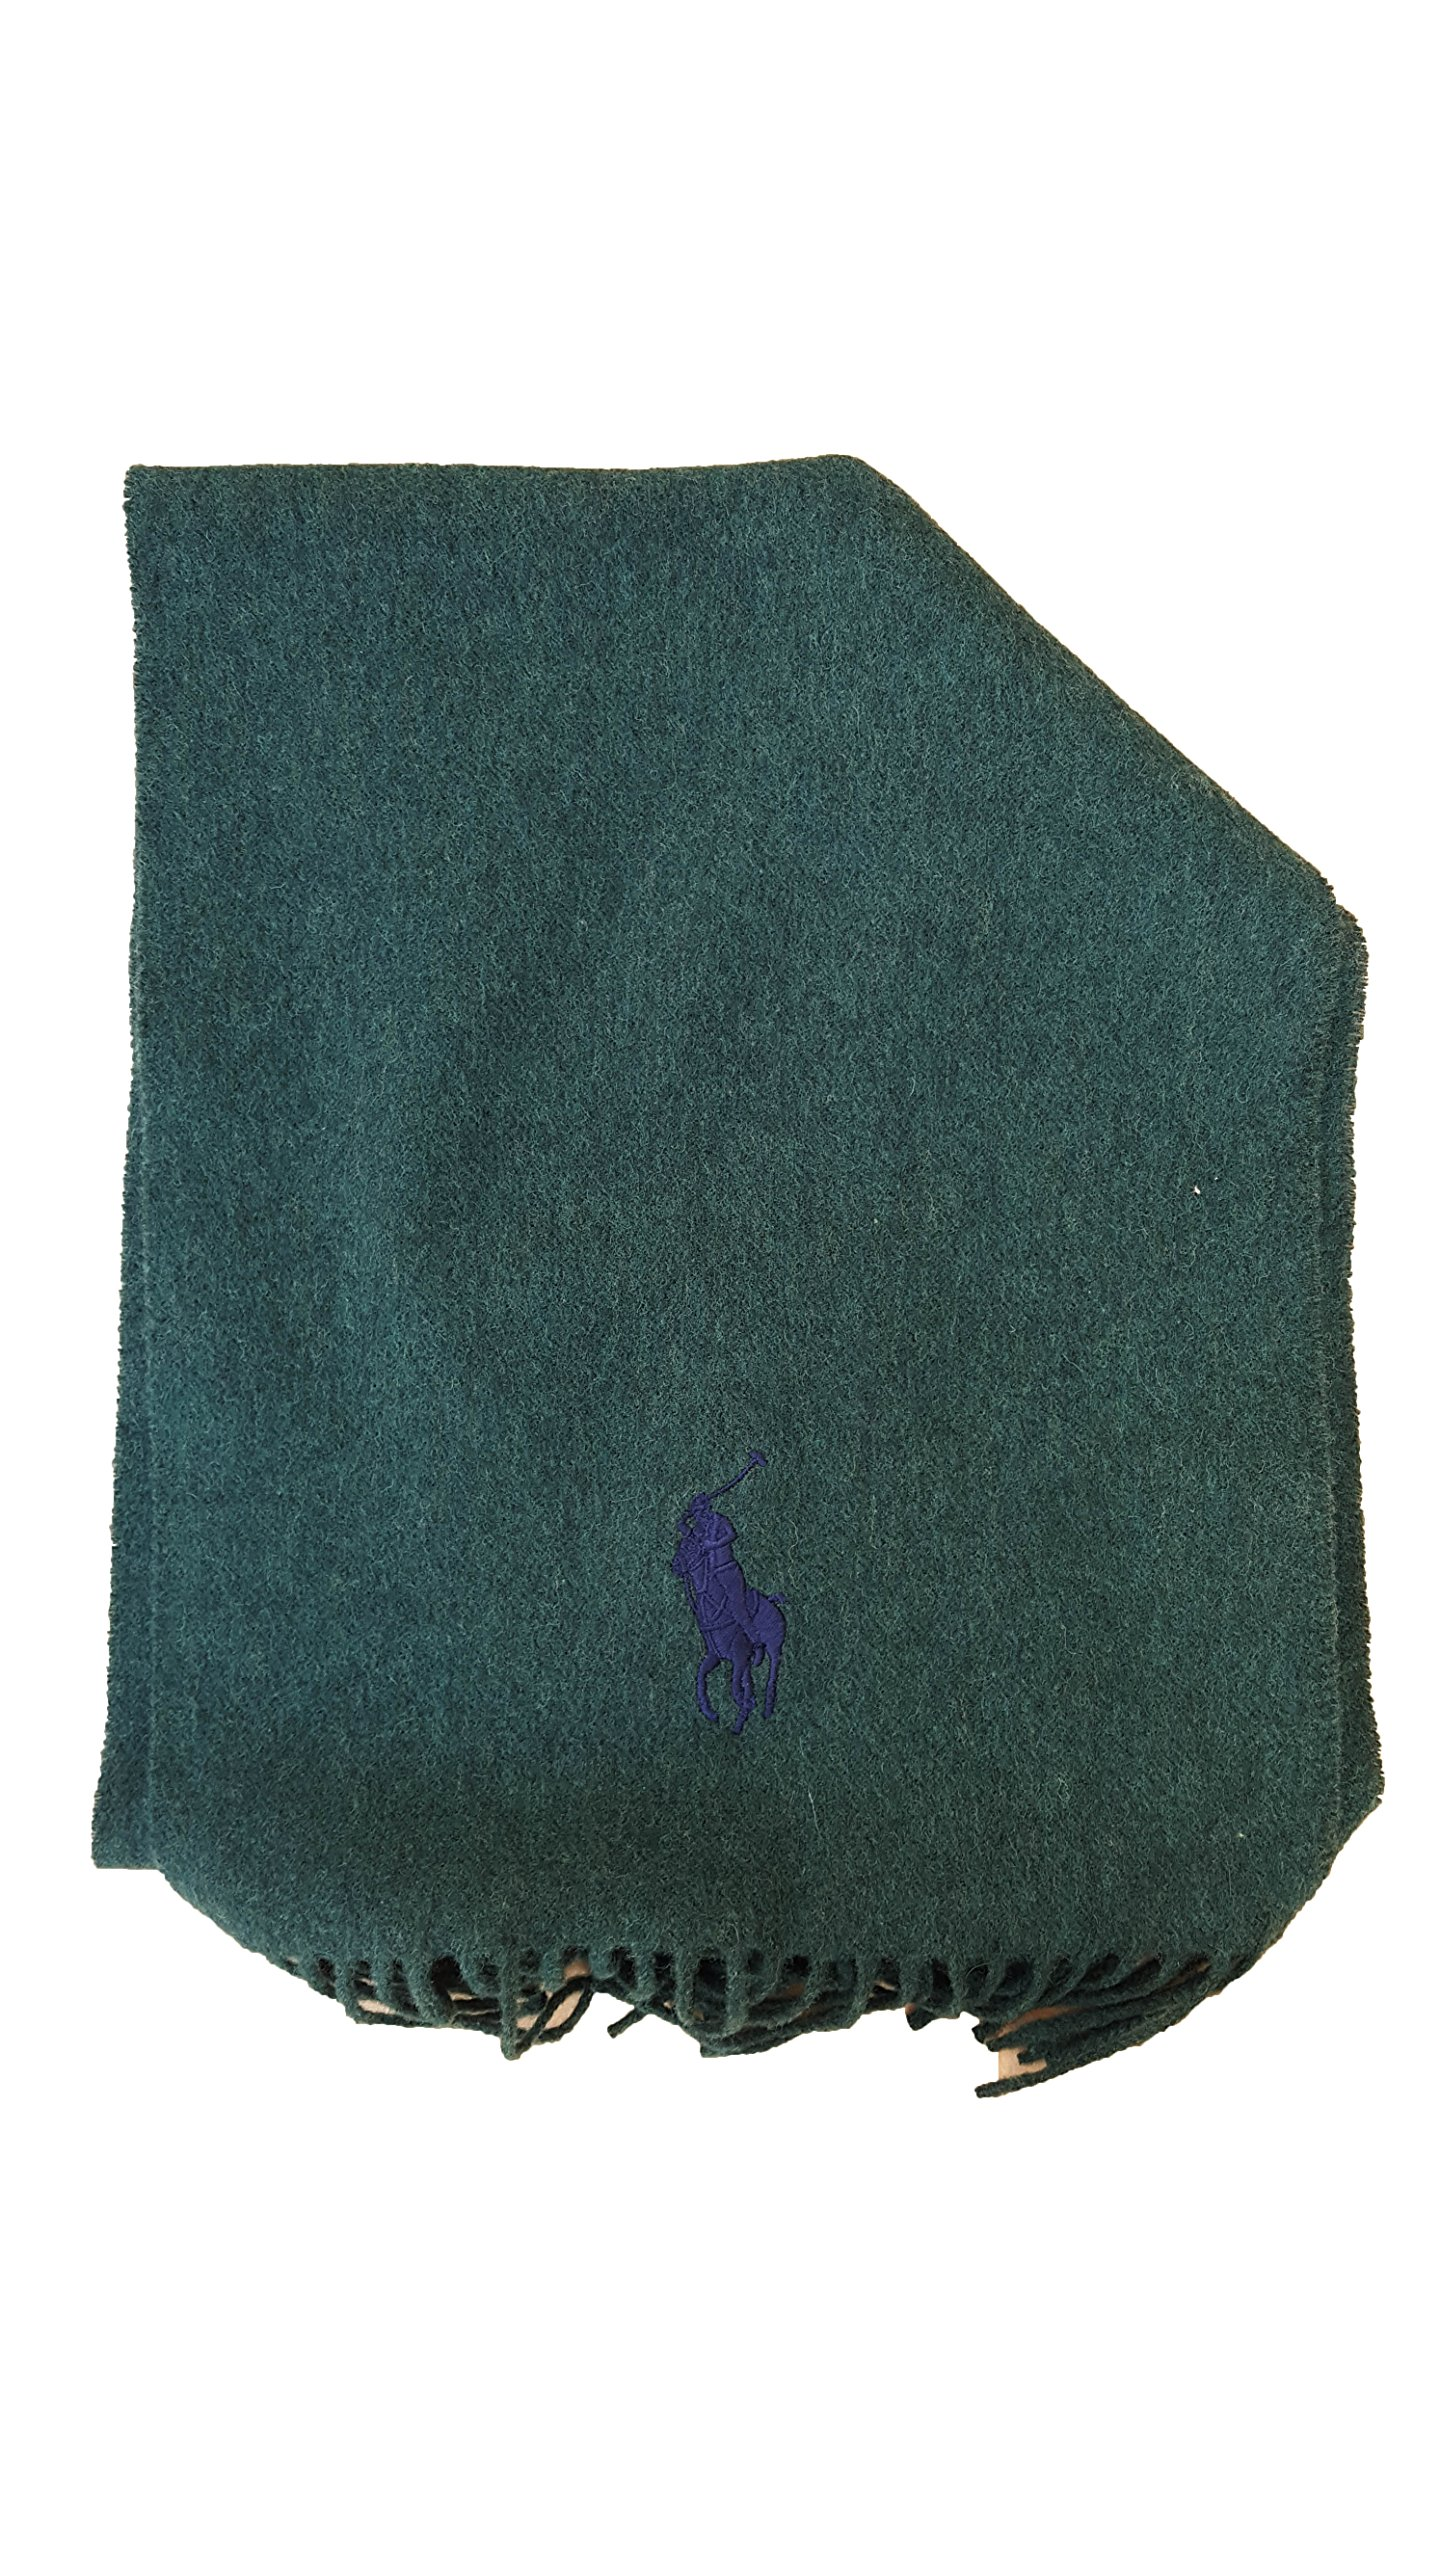 Men's LambsWool Solid Color Scarf by Polo Ralph Lauren, Made In Italy (Dark Green)